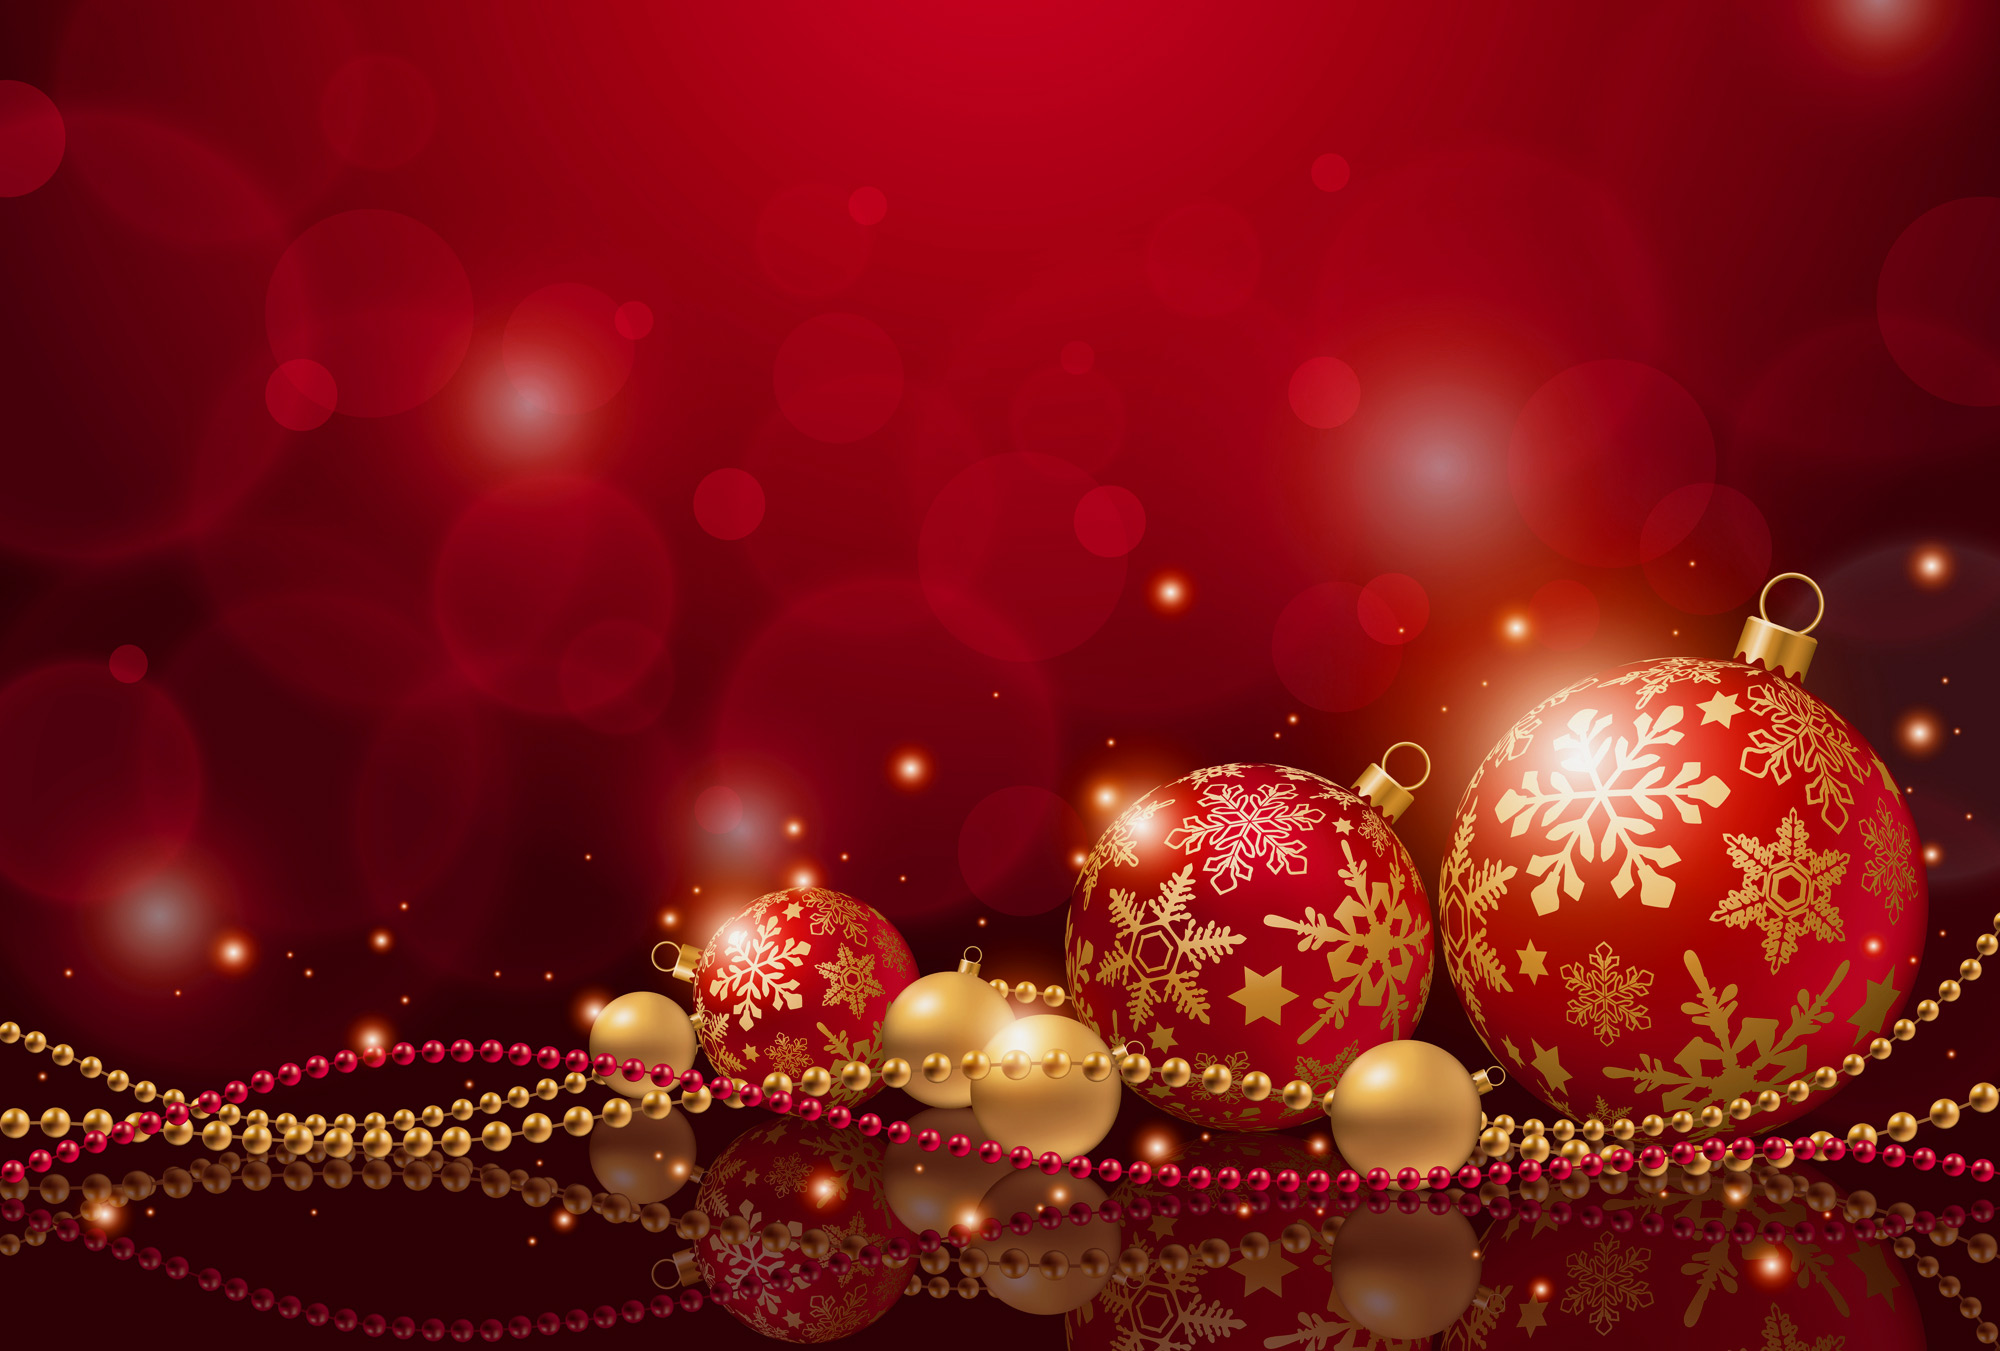 Red Christmas Background with Christmas Balls Gallery 2000x1351